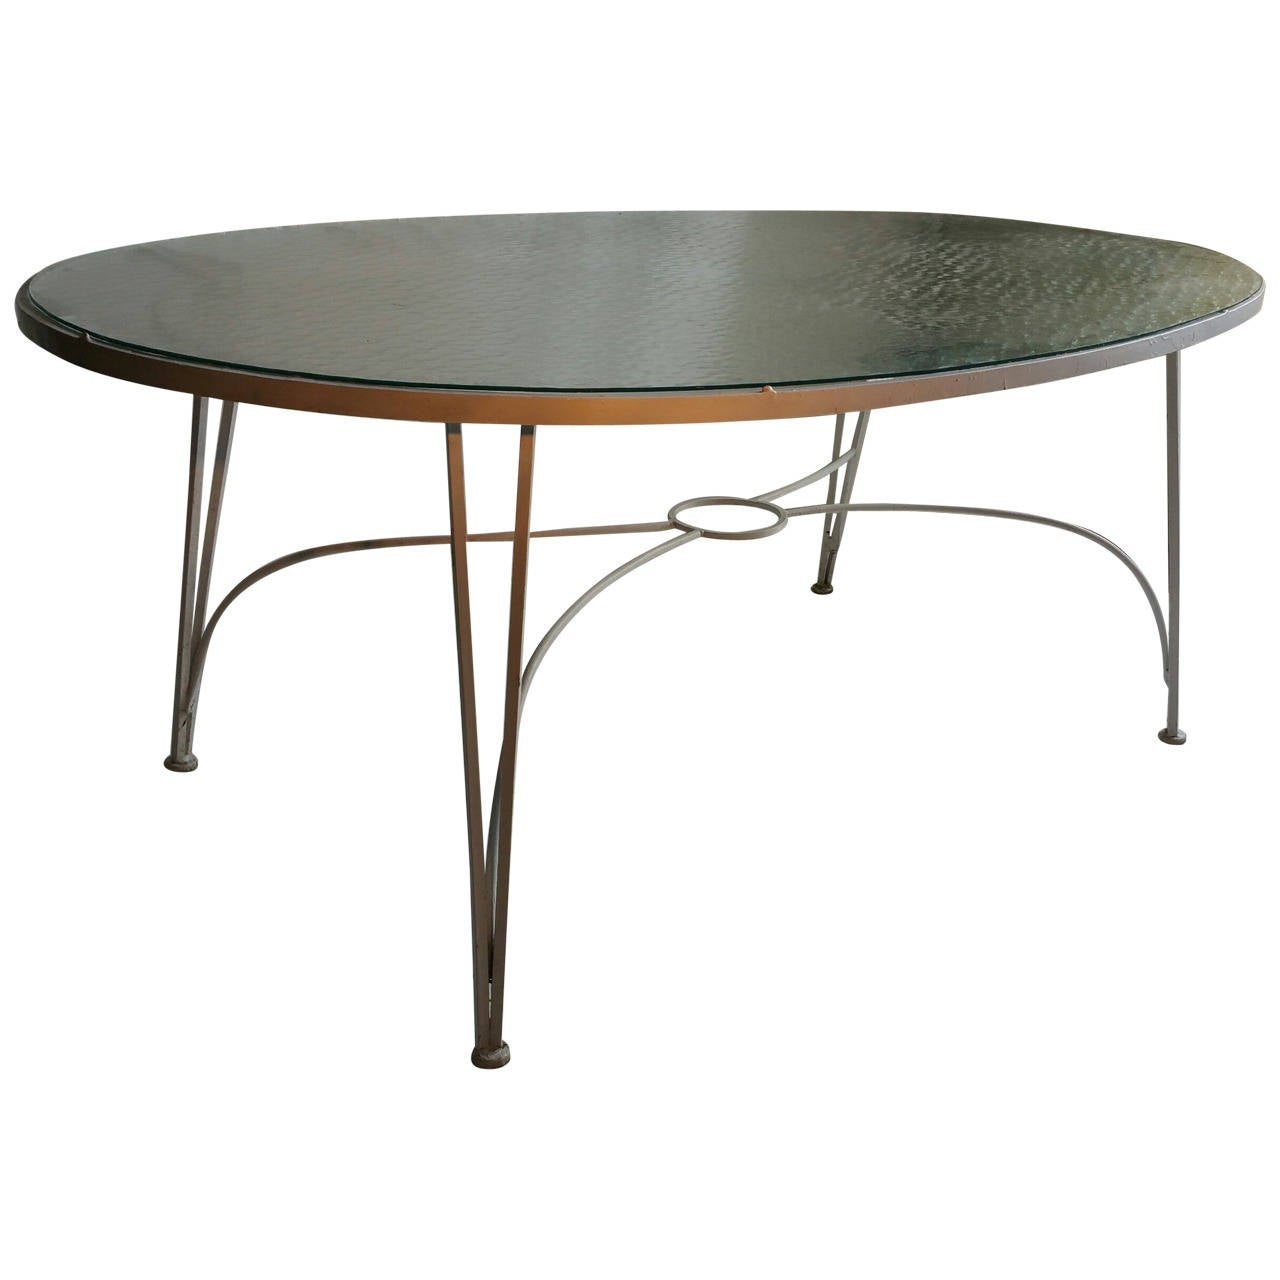 Classic Russell Woodard Wrought Iron Dining Table Pinecrest At 1stdibs